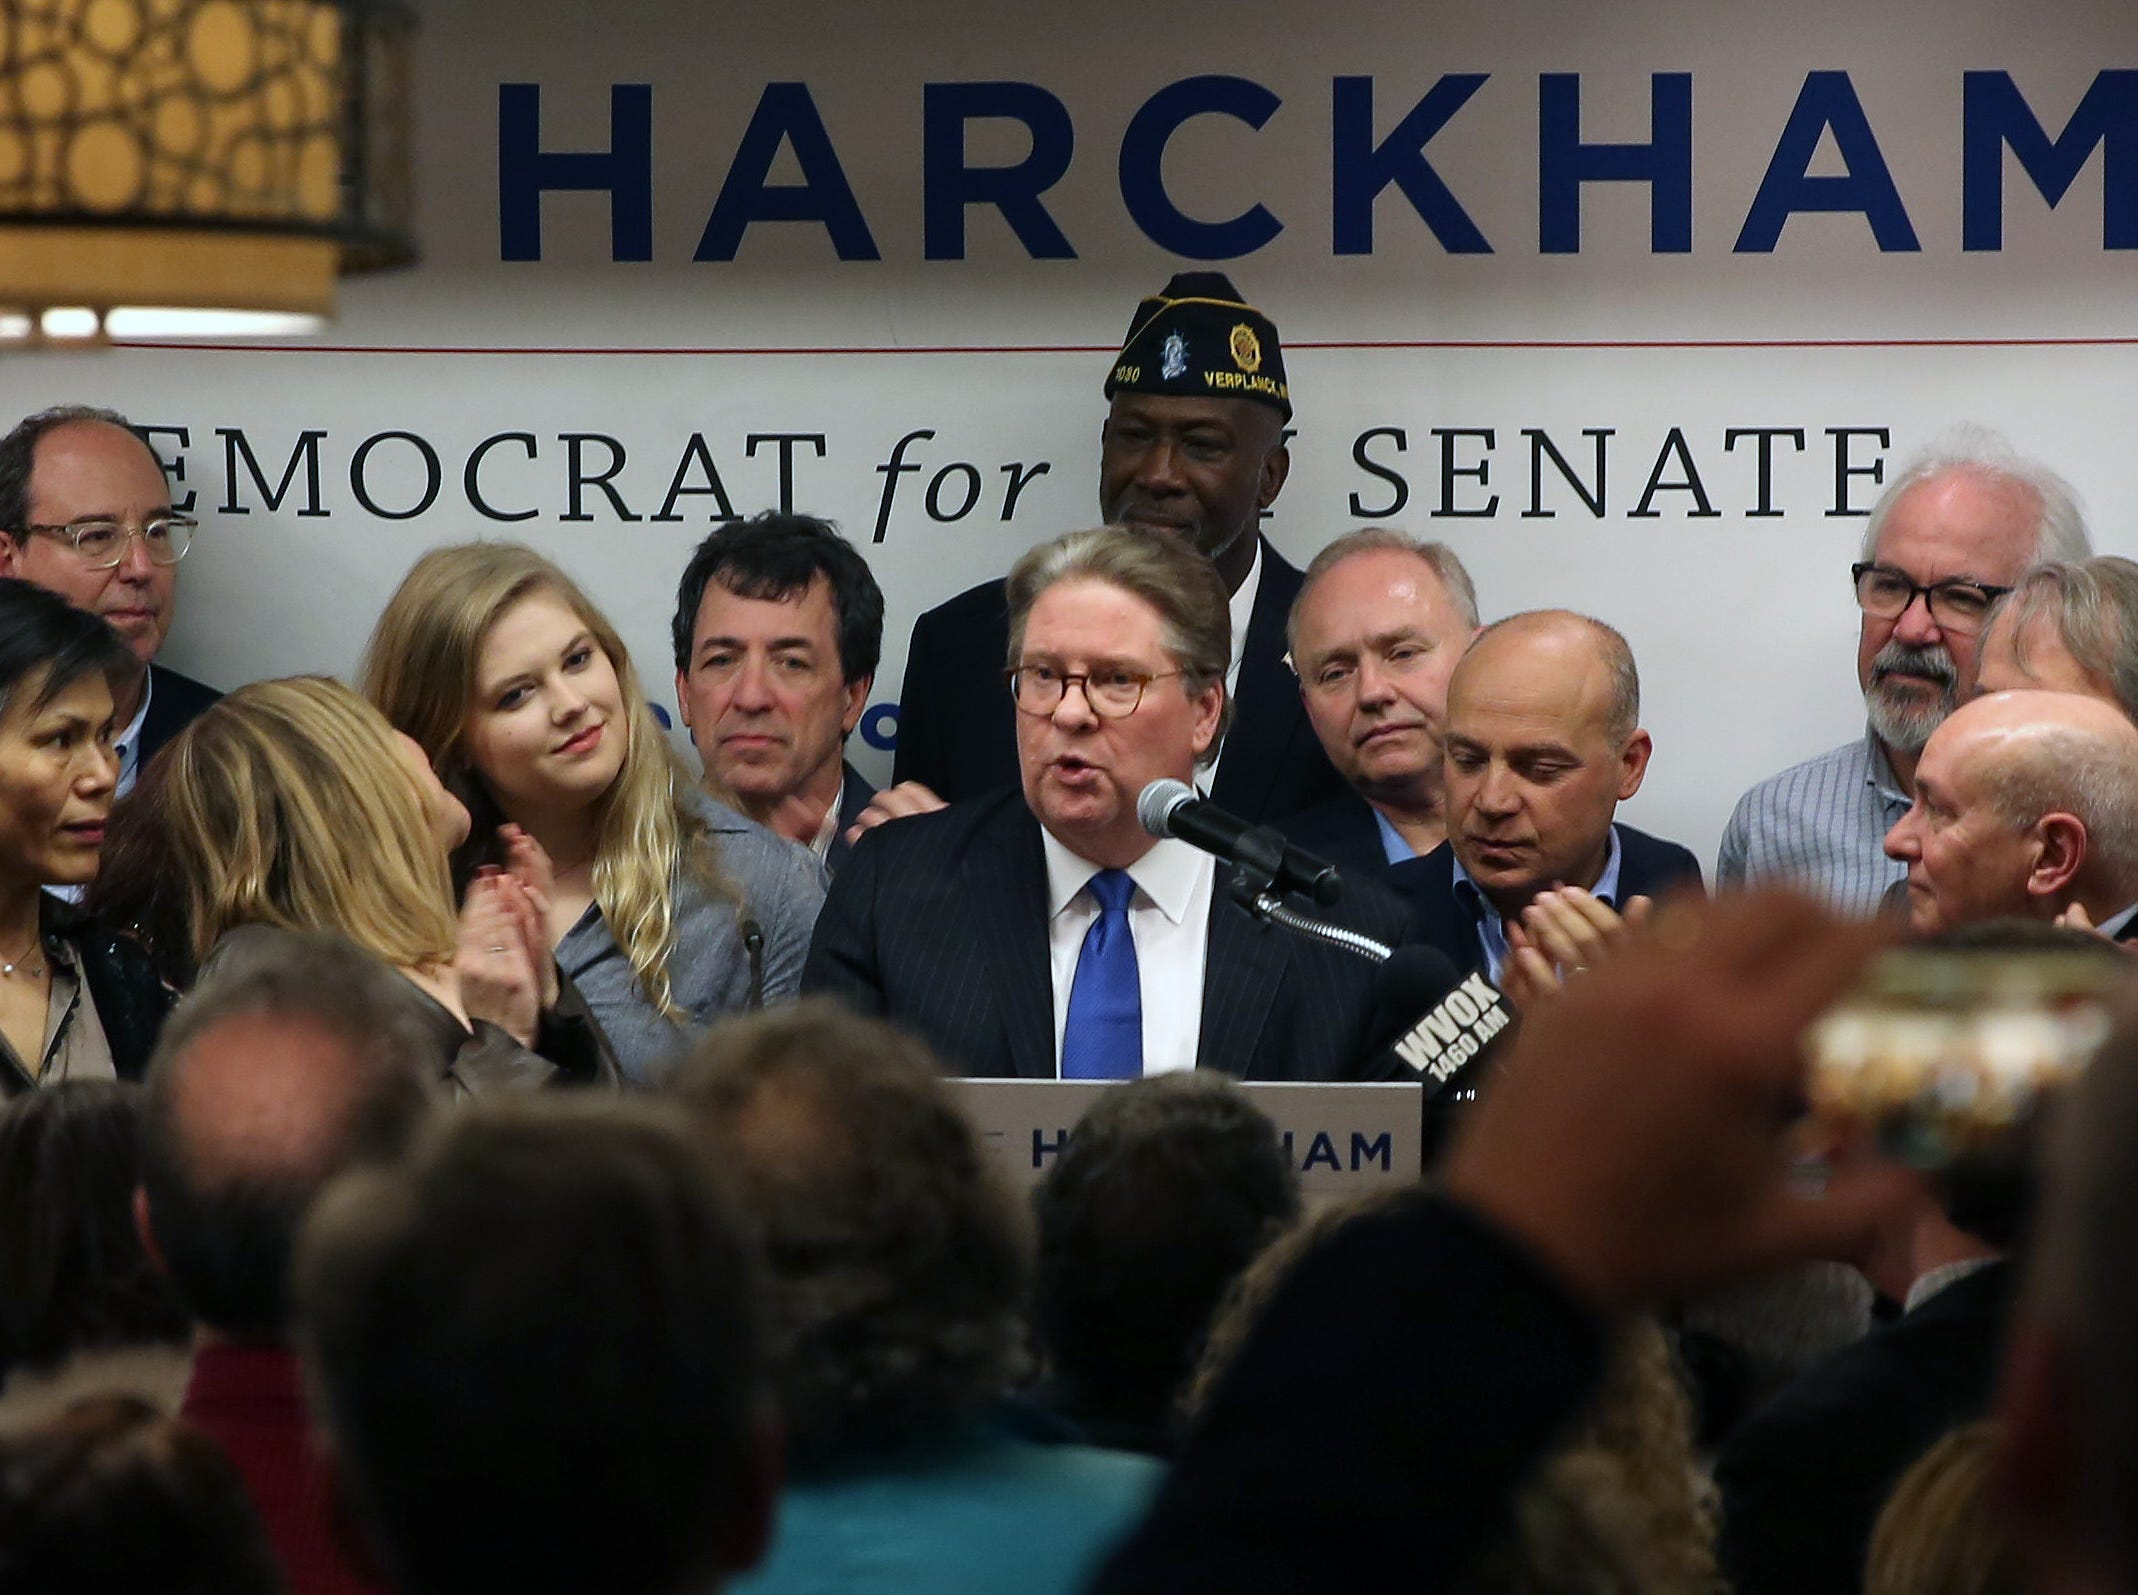 Pete Harckham speaks to his supporters after defeating SenatorTerrence Murphy in the state senate race at the Mount Kisco Holiday Inn Nov. 6,  2018.